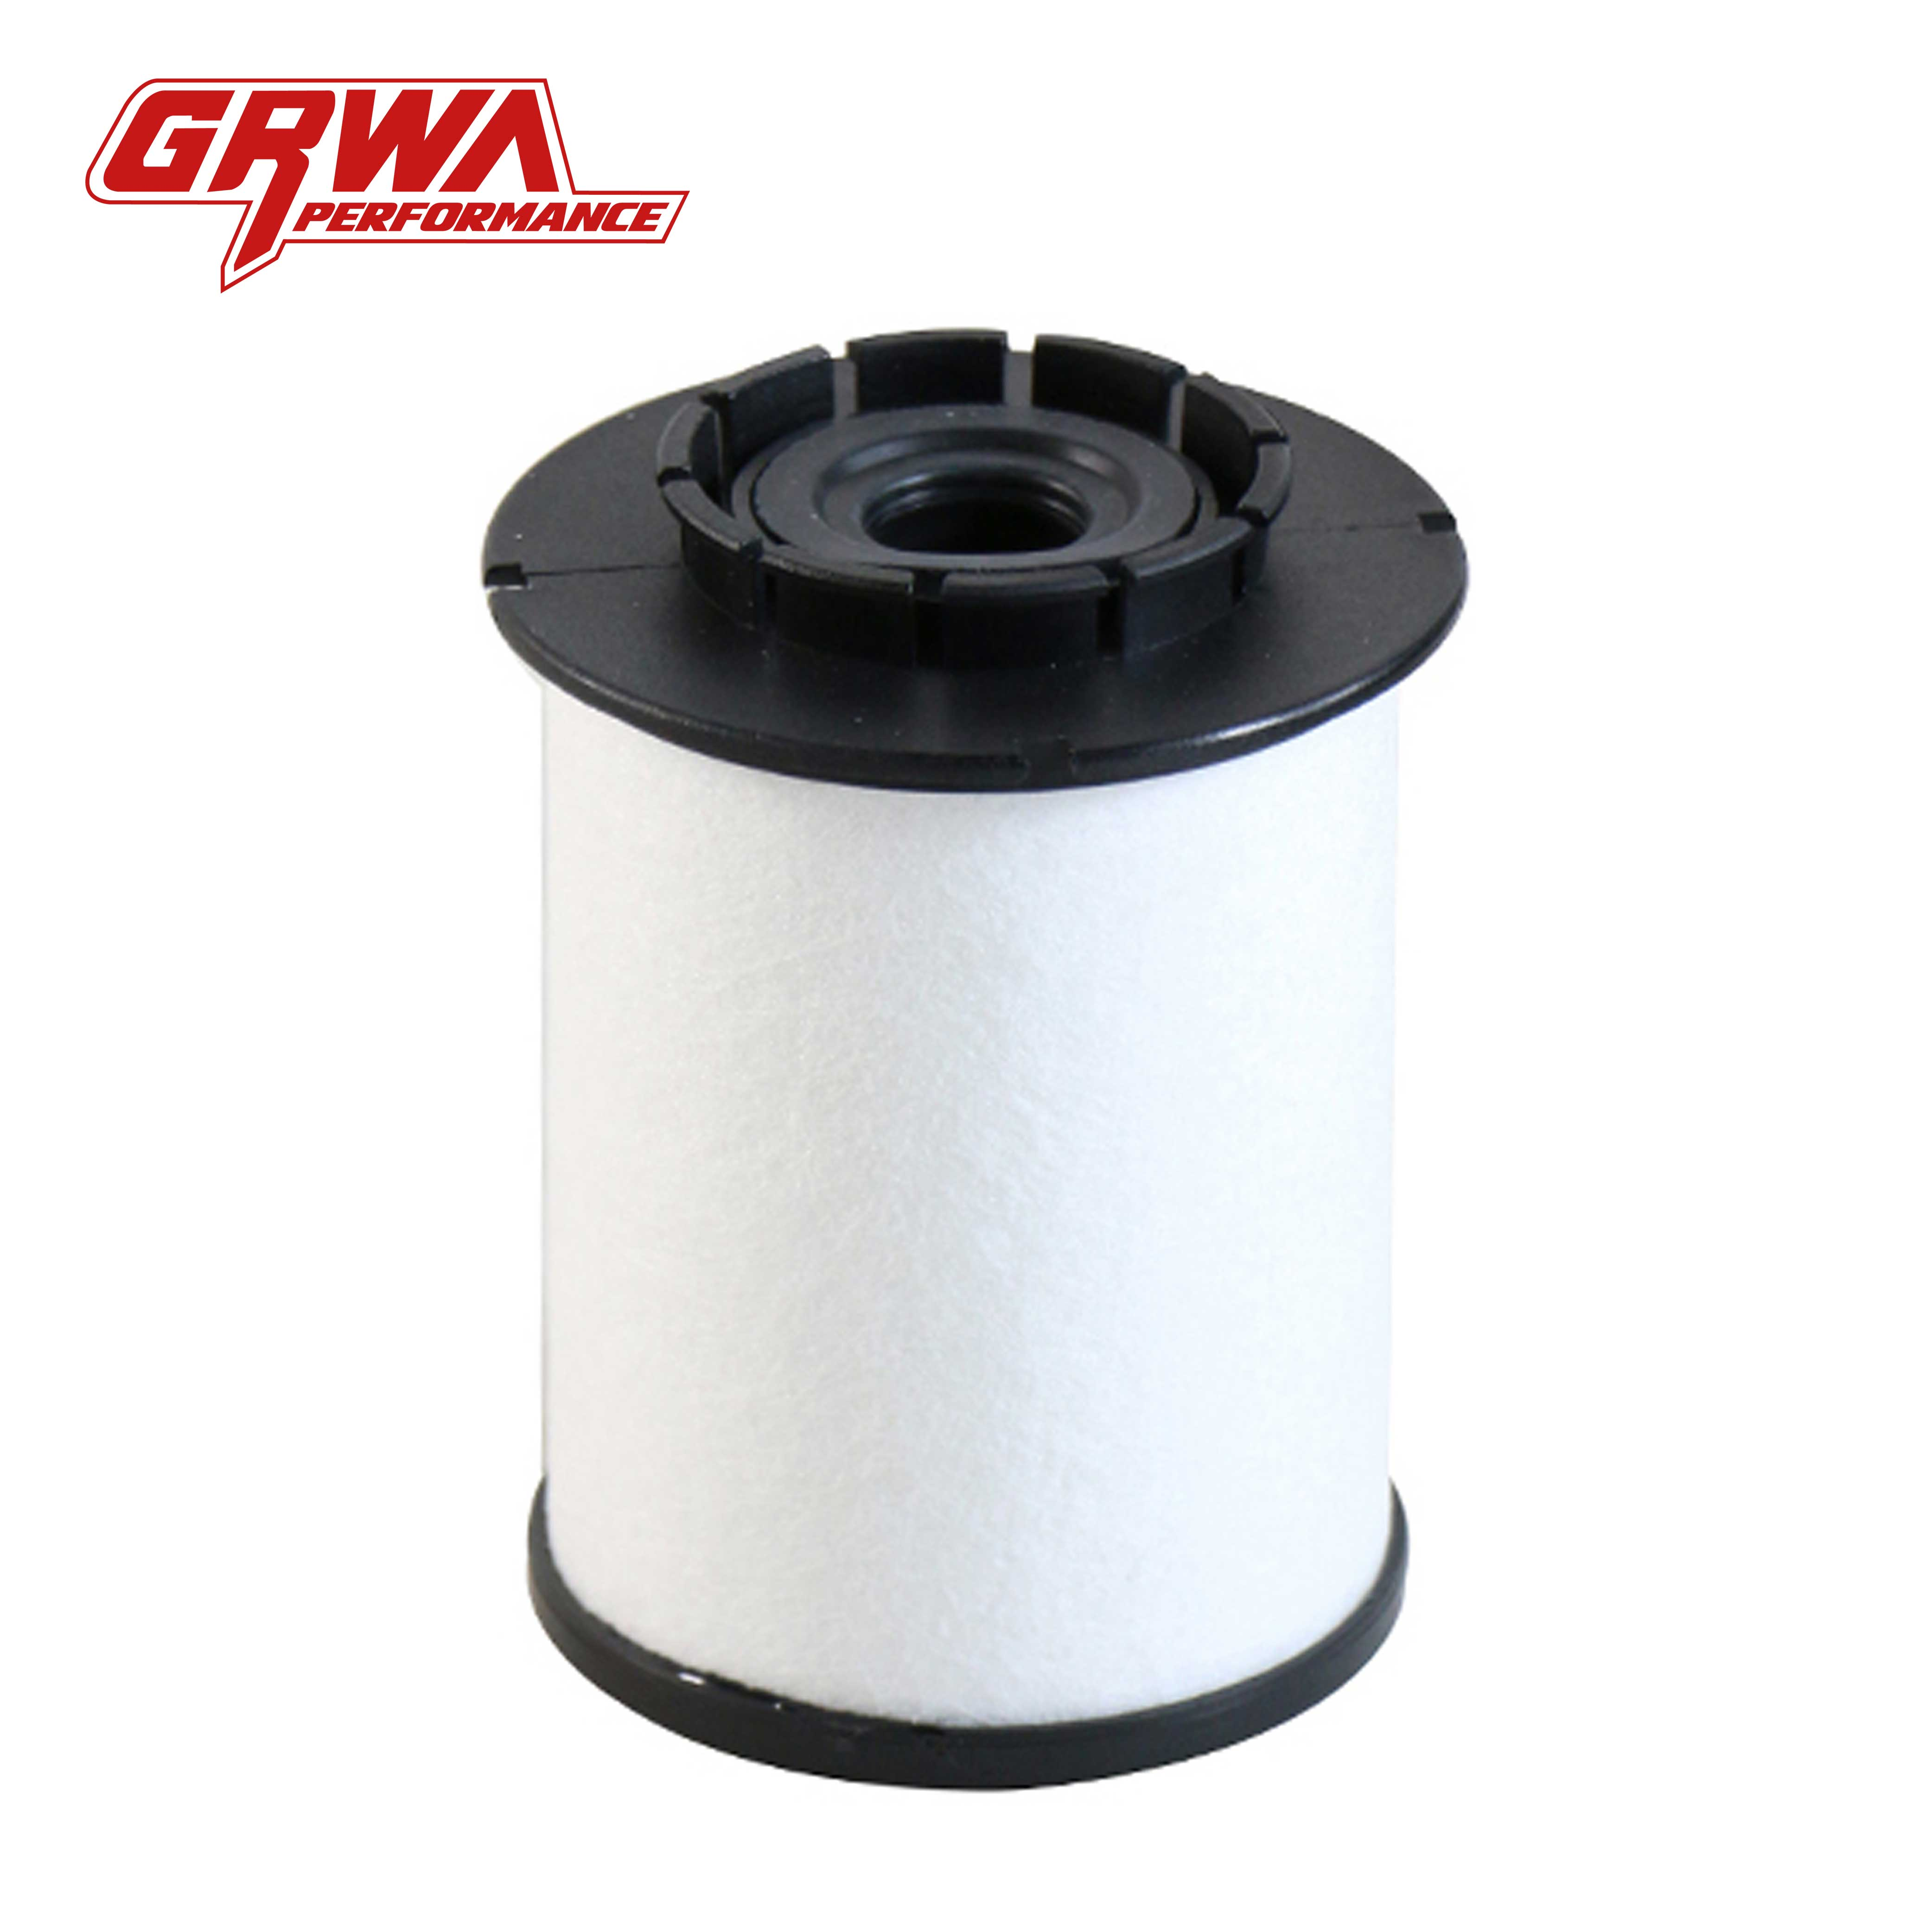 GRWA High Quality Engine Parts Air Intake Filter 96896403